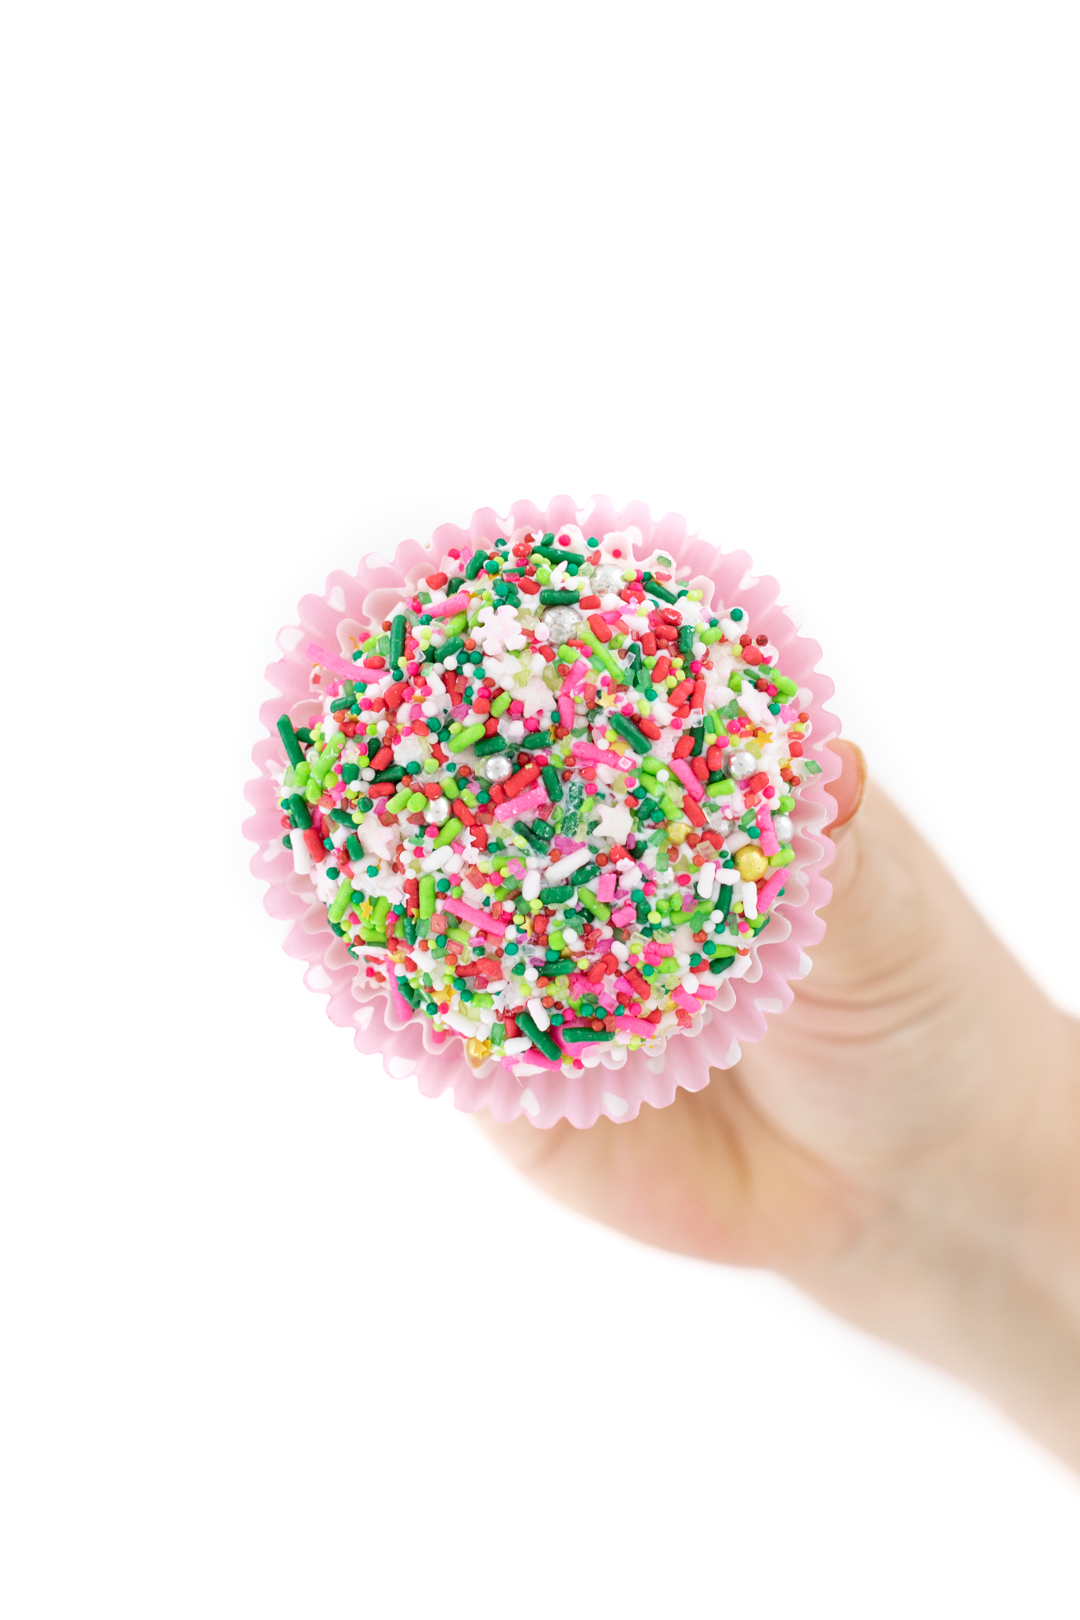 dipping frosted cupcakes into sprinkles to get them to stick